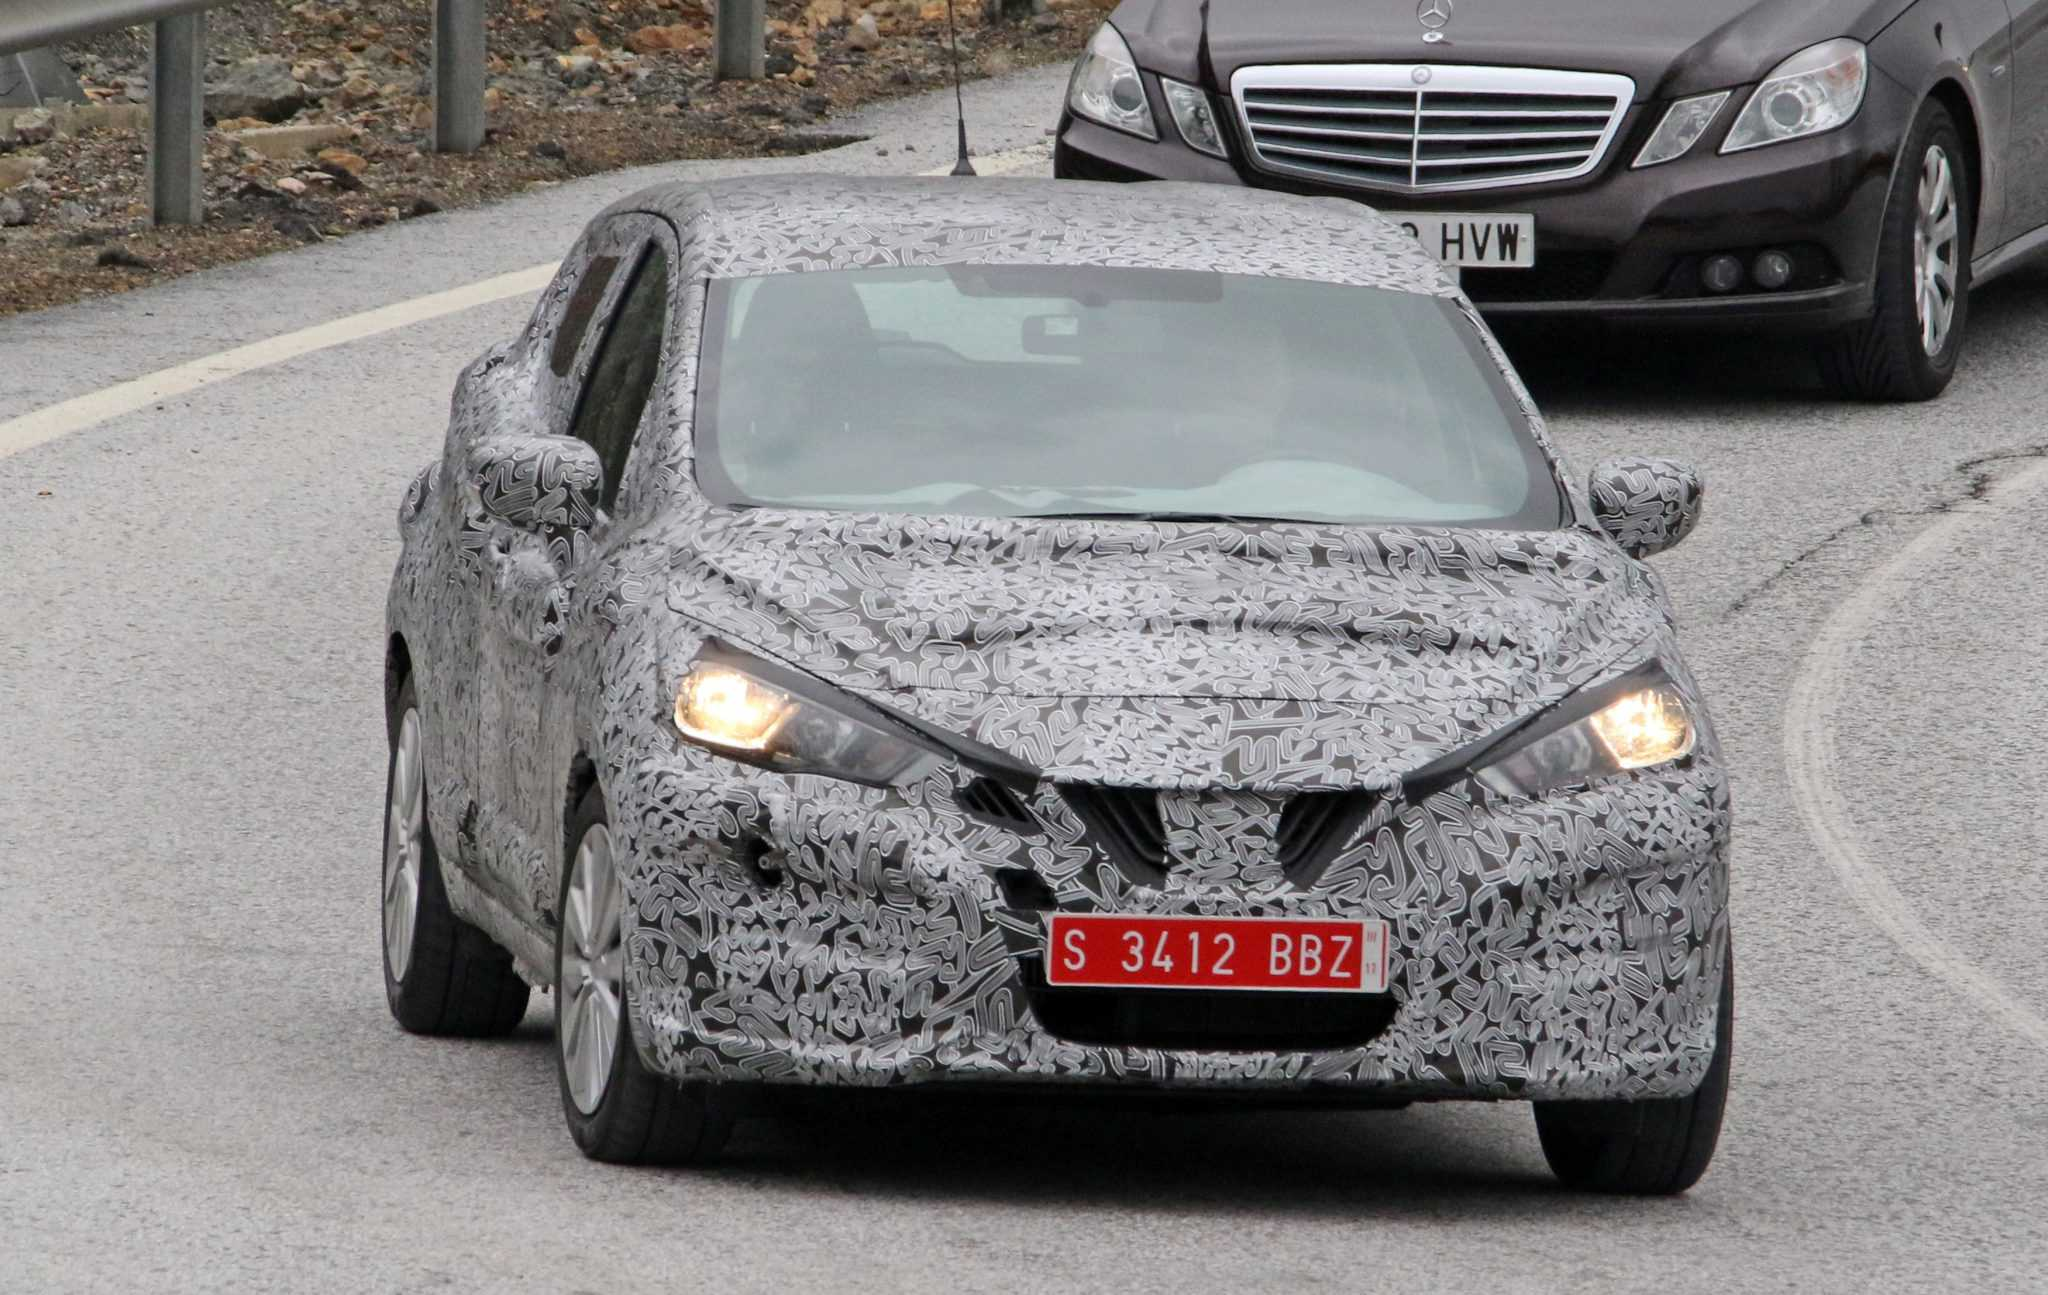 2017 Nissan Micra Undergoes Drastic Changes, Spy Shots Emerge